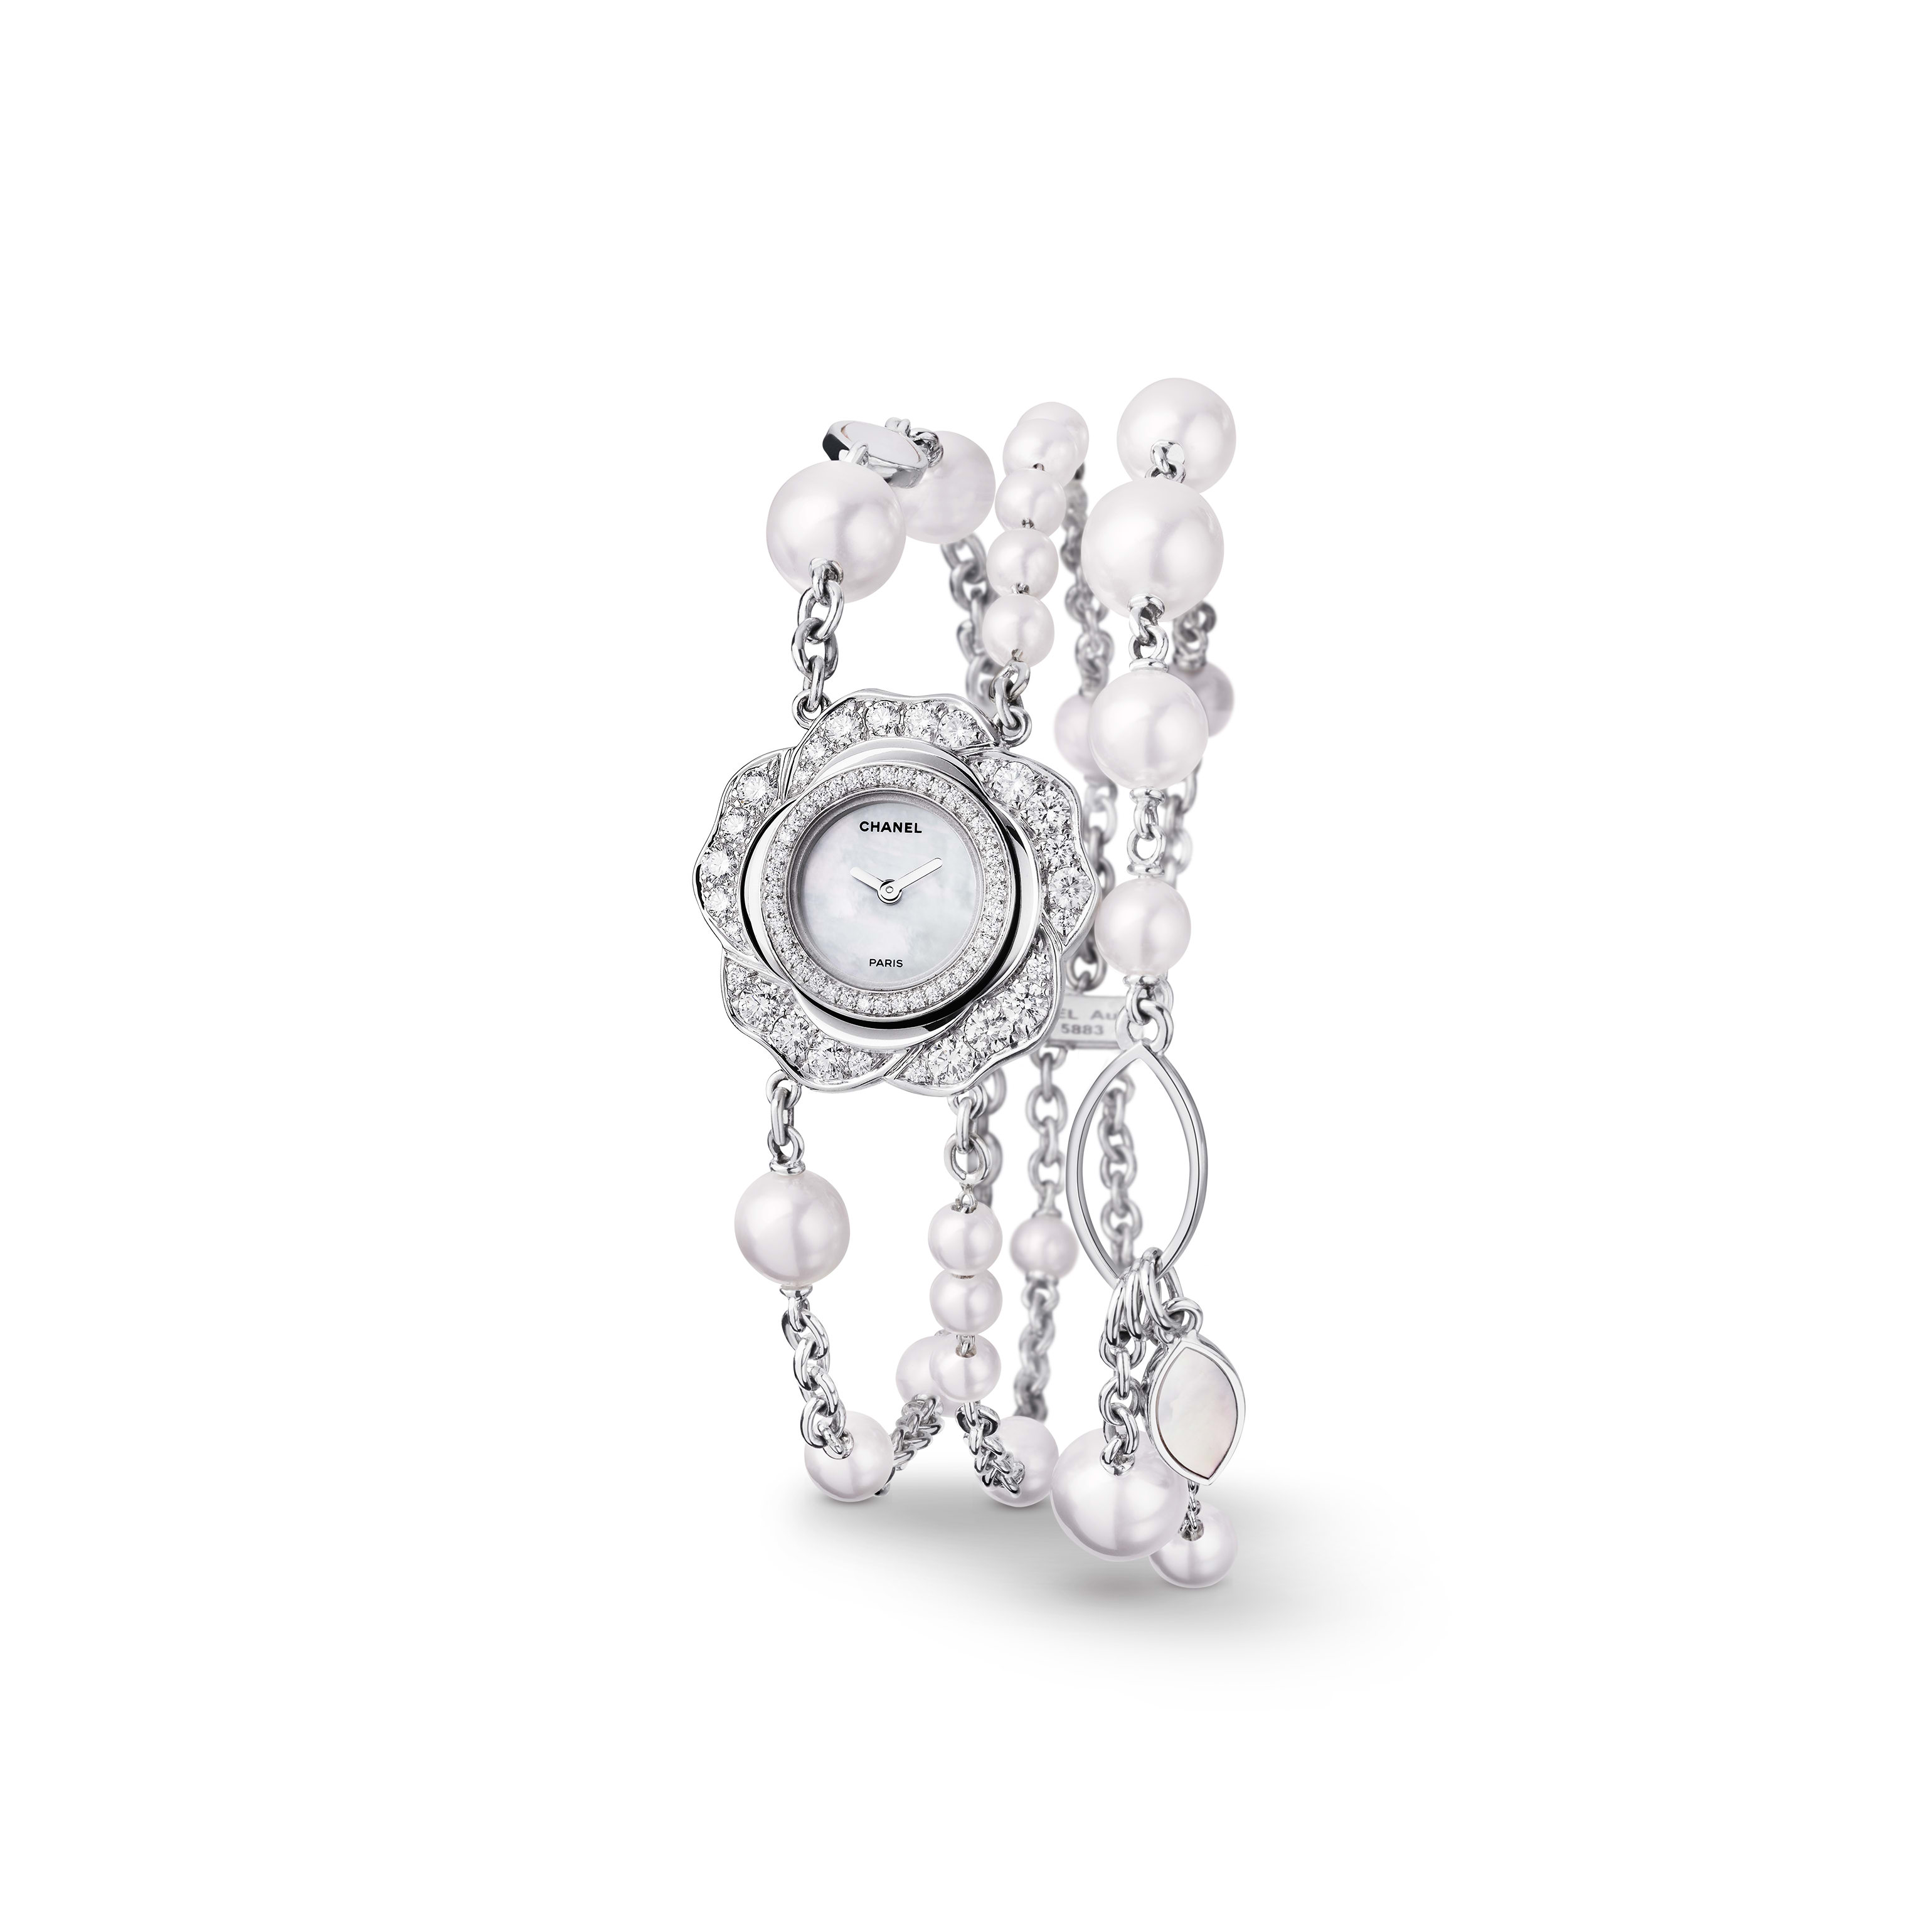 Camélia Jewellery Watch - Watch with Bouton de Camélia motif in 18K white gold, diamonds and cultured pearls - CHANEL - Default view - see standard sized version